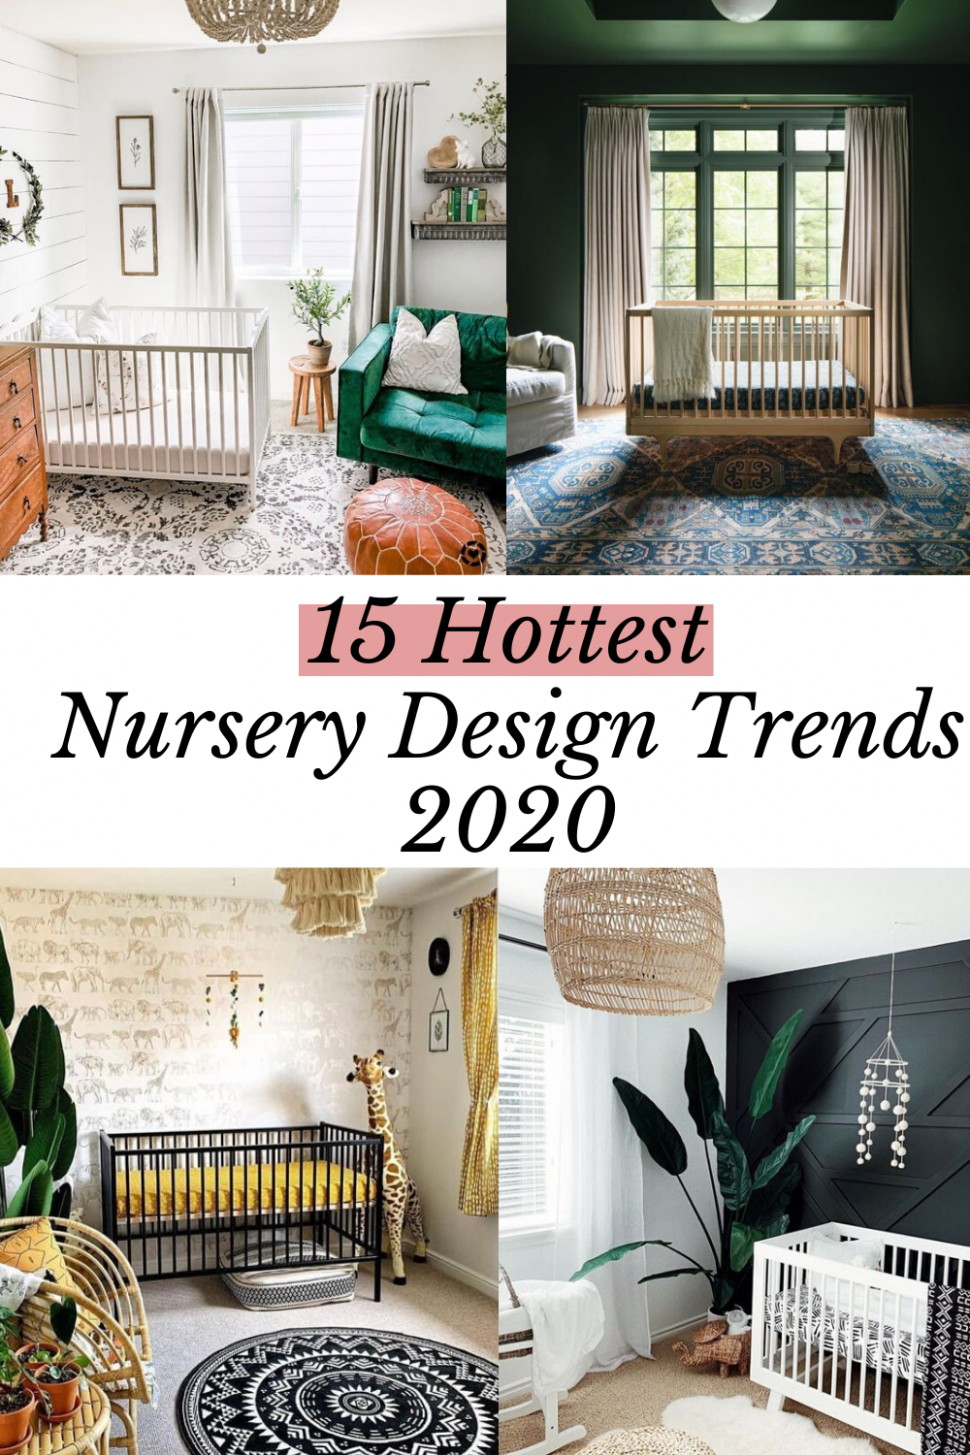 11 NURSERY DESIGN TRENDS KICKING OFF THE NEW DECADE OF BABY ...